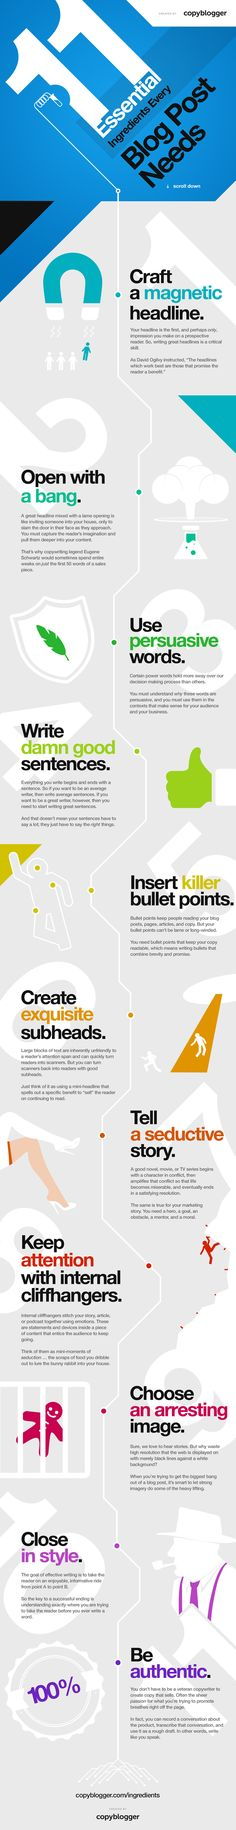 Essentials of a #Blog Post #infographic